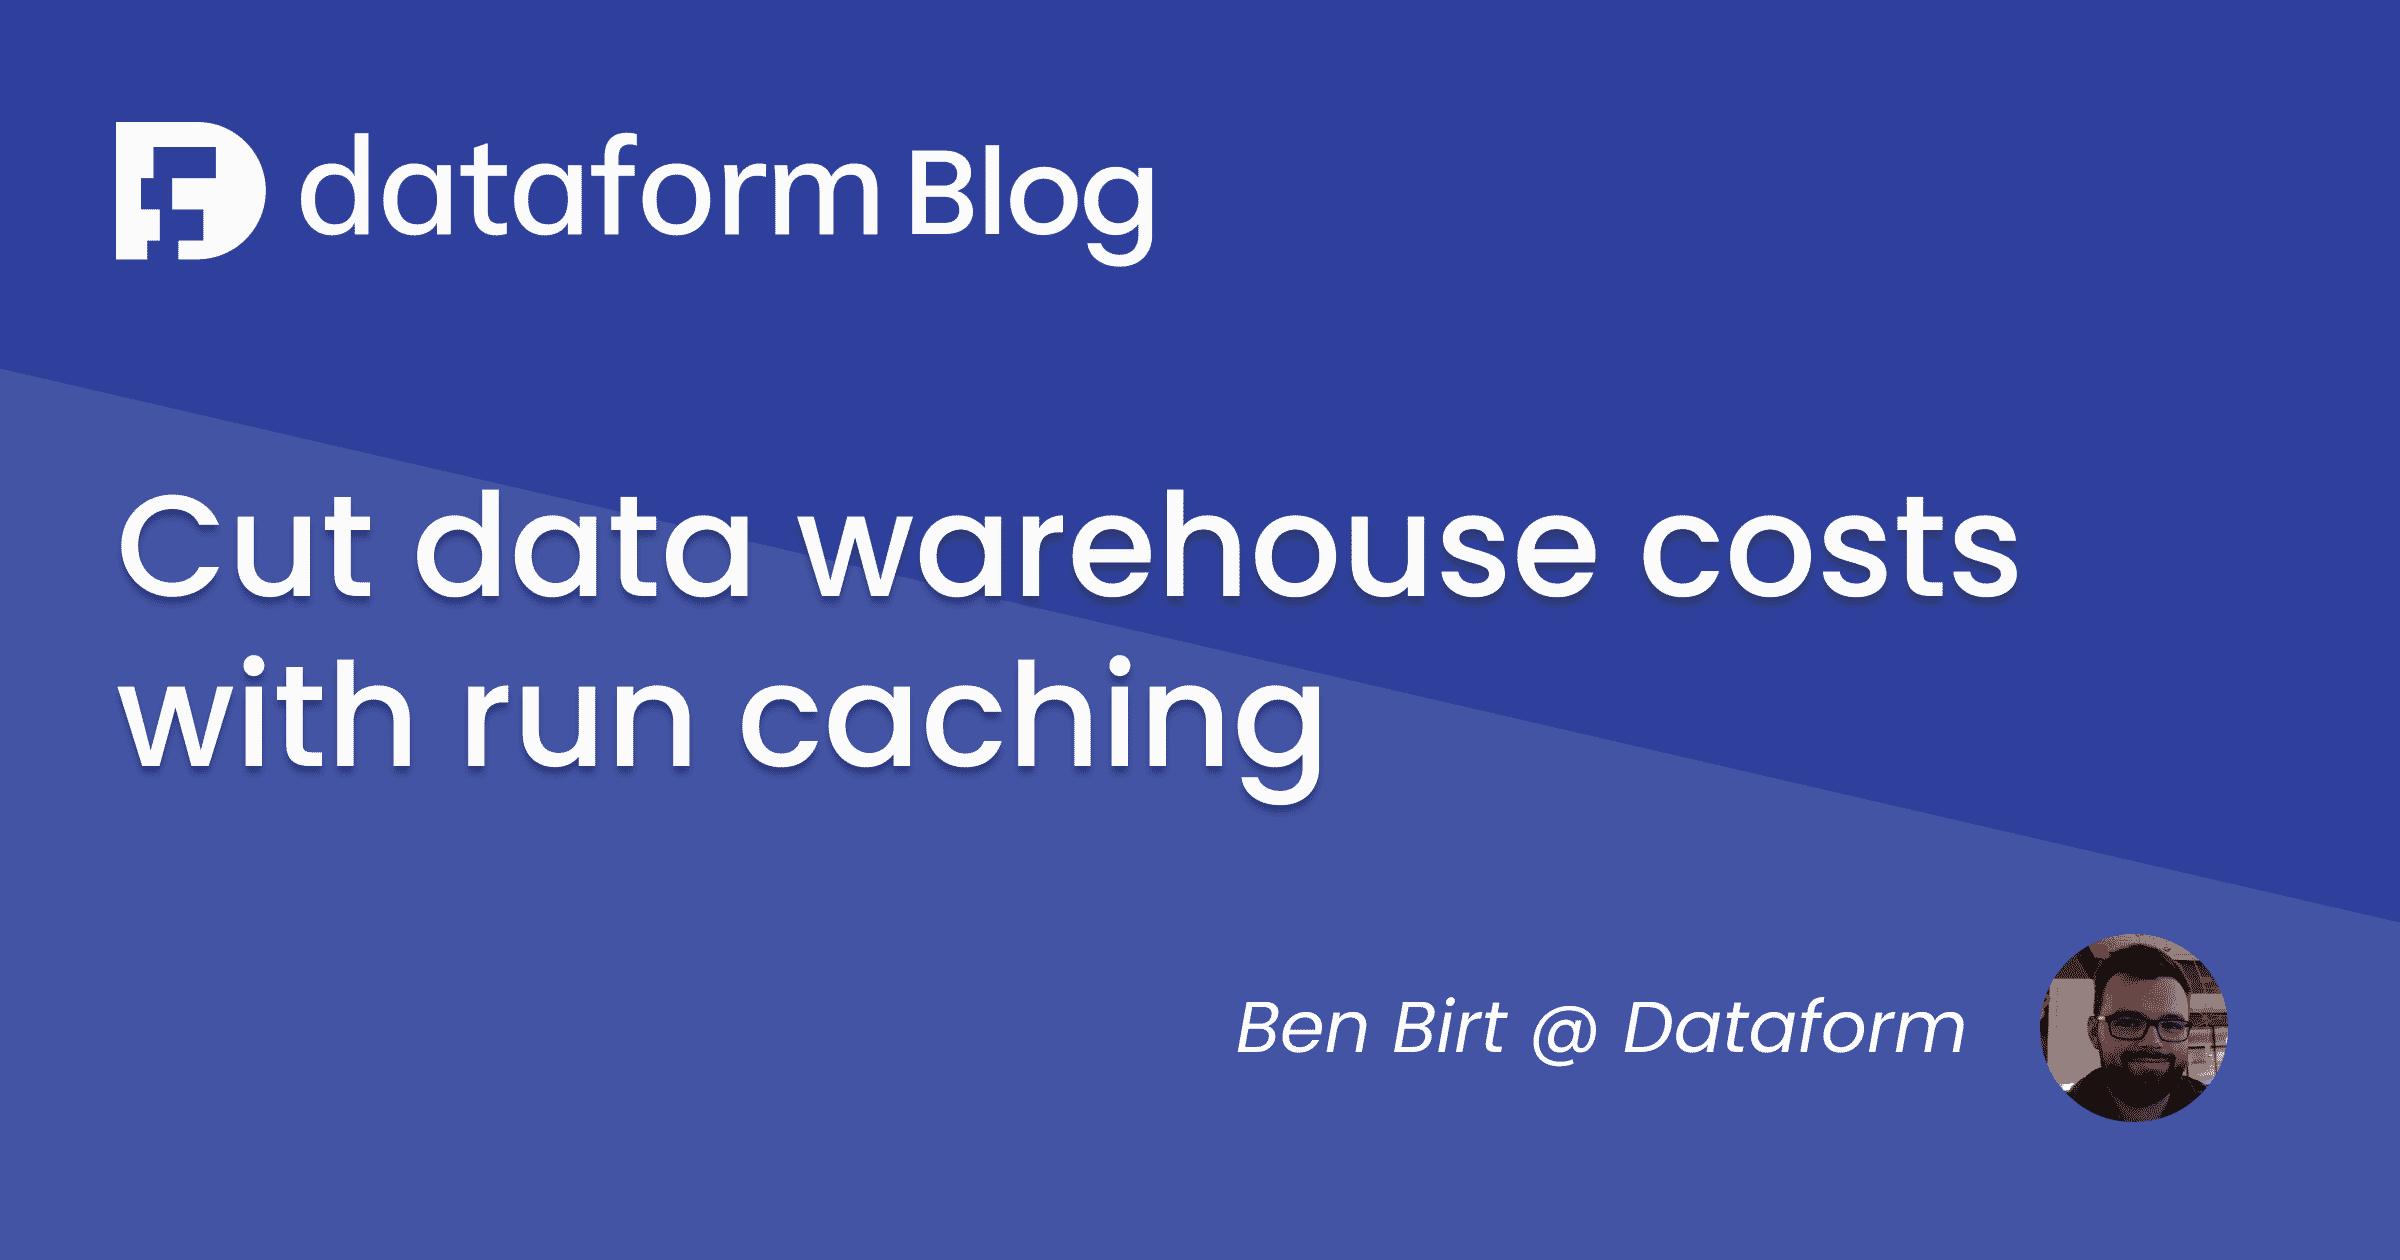 Cut data warehouse costs with run caching illustration